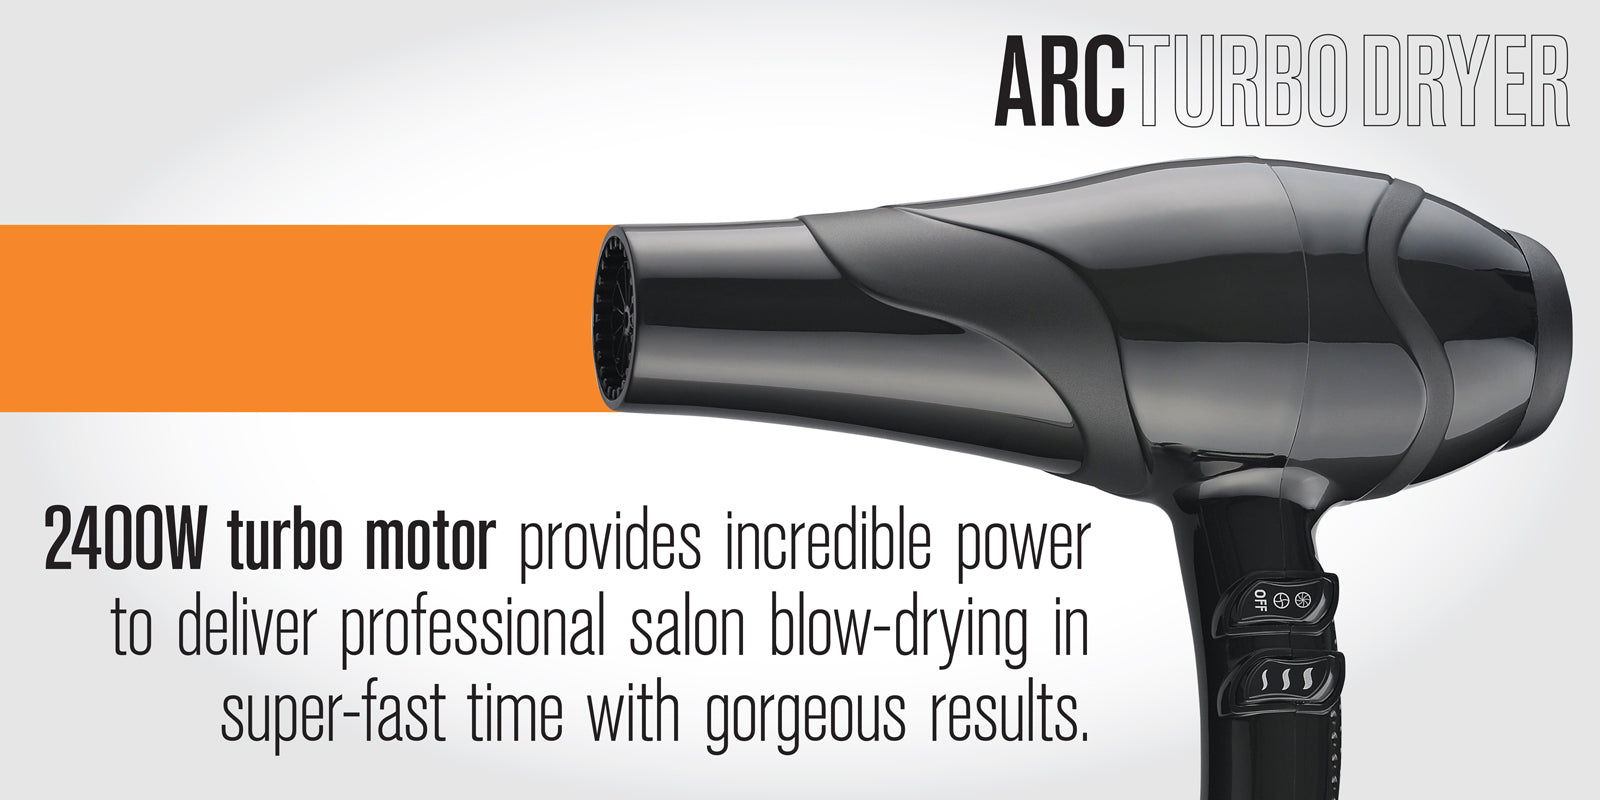 Arc Dryer